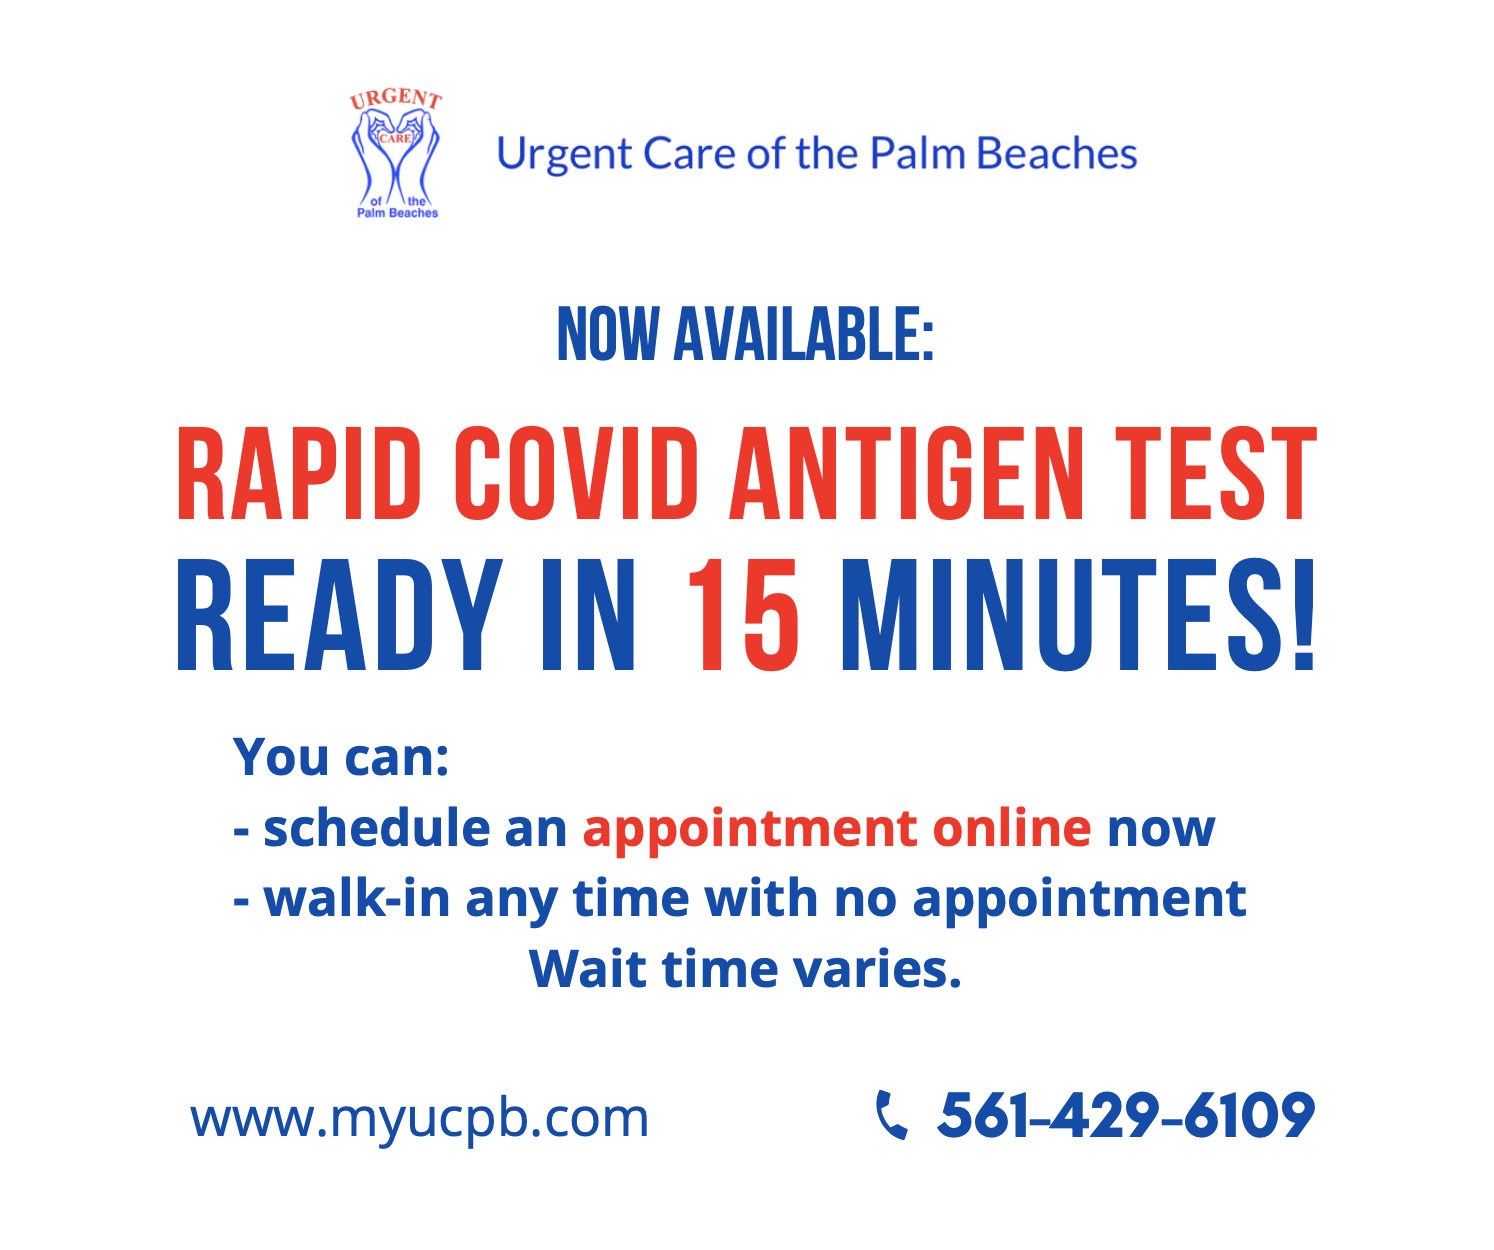 Now Available Rapid Covid Antigen Test Urgent Care Of The Palm Beaches